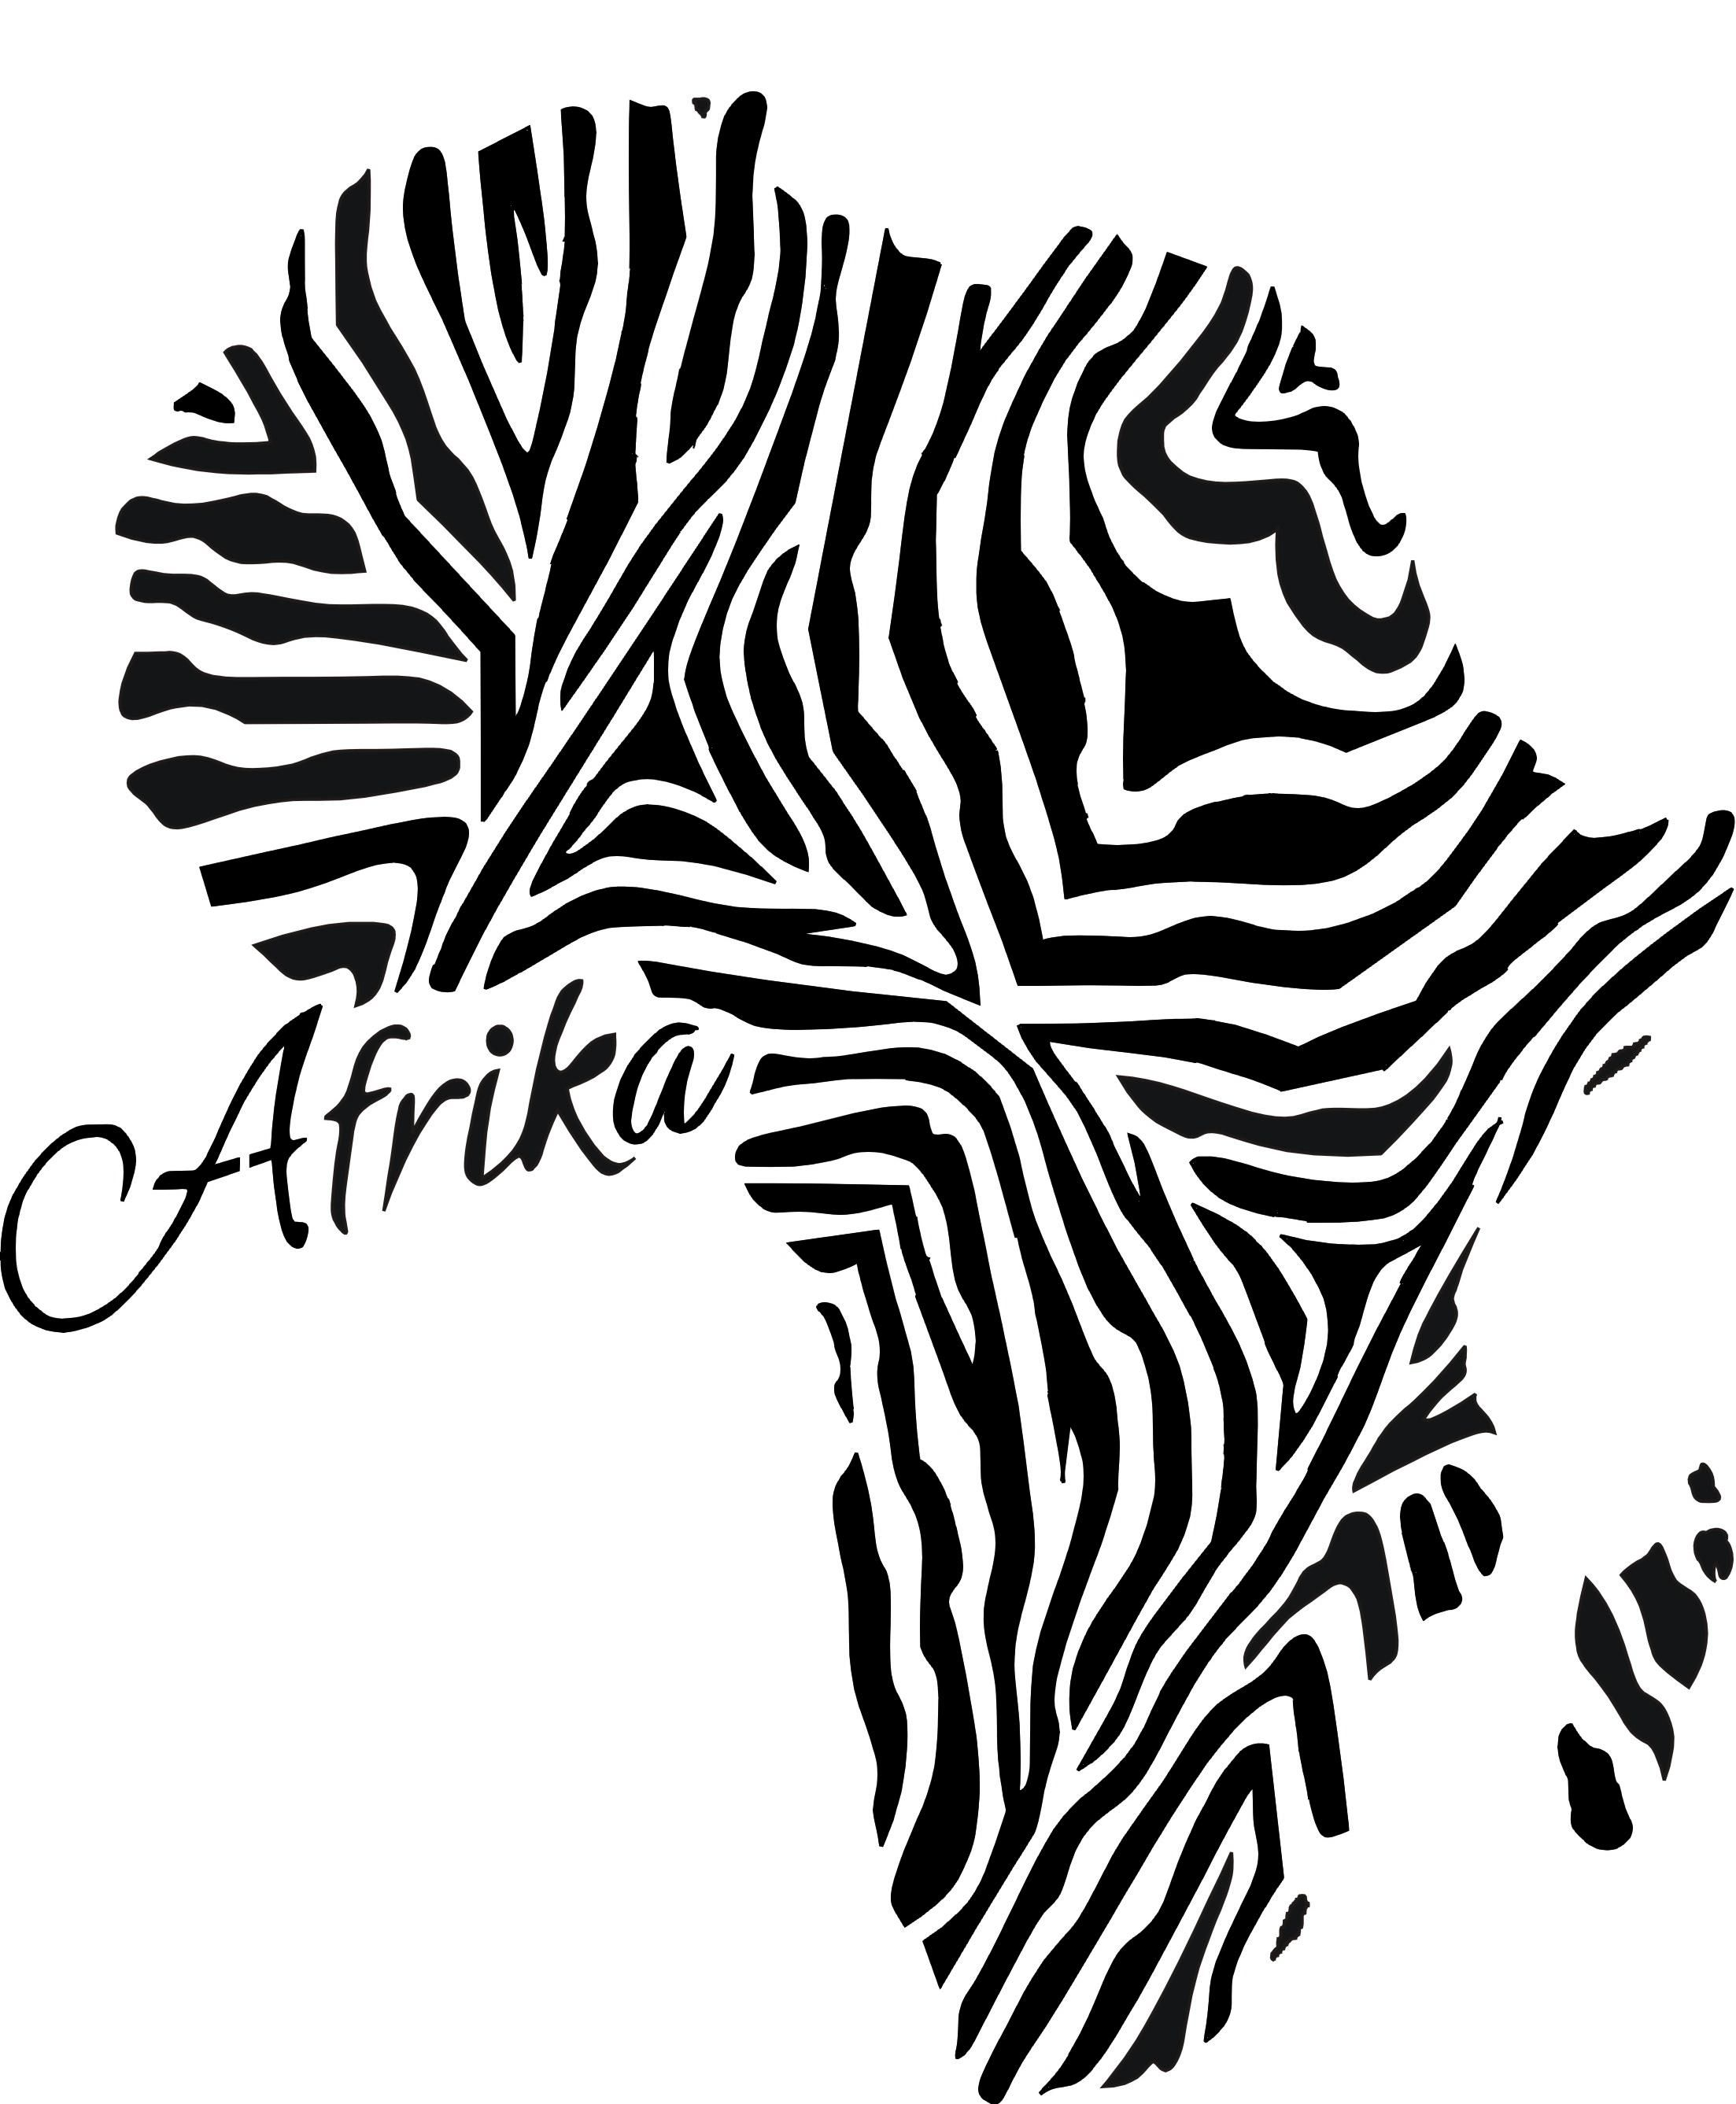 stencil schablone afrika africa the motherland pinterest afrika bilder afrika and afrika. Black Bedroom Furniture Sets. Home Design Ideas